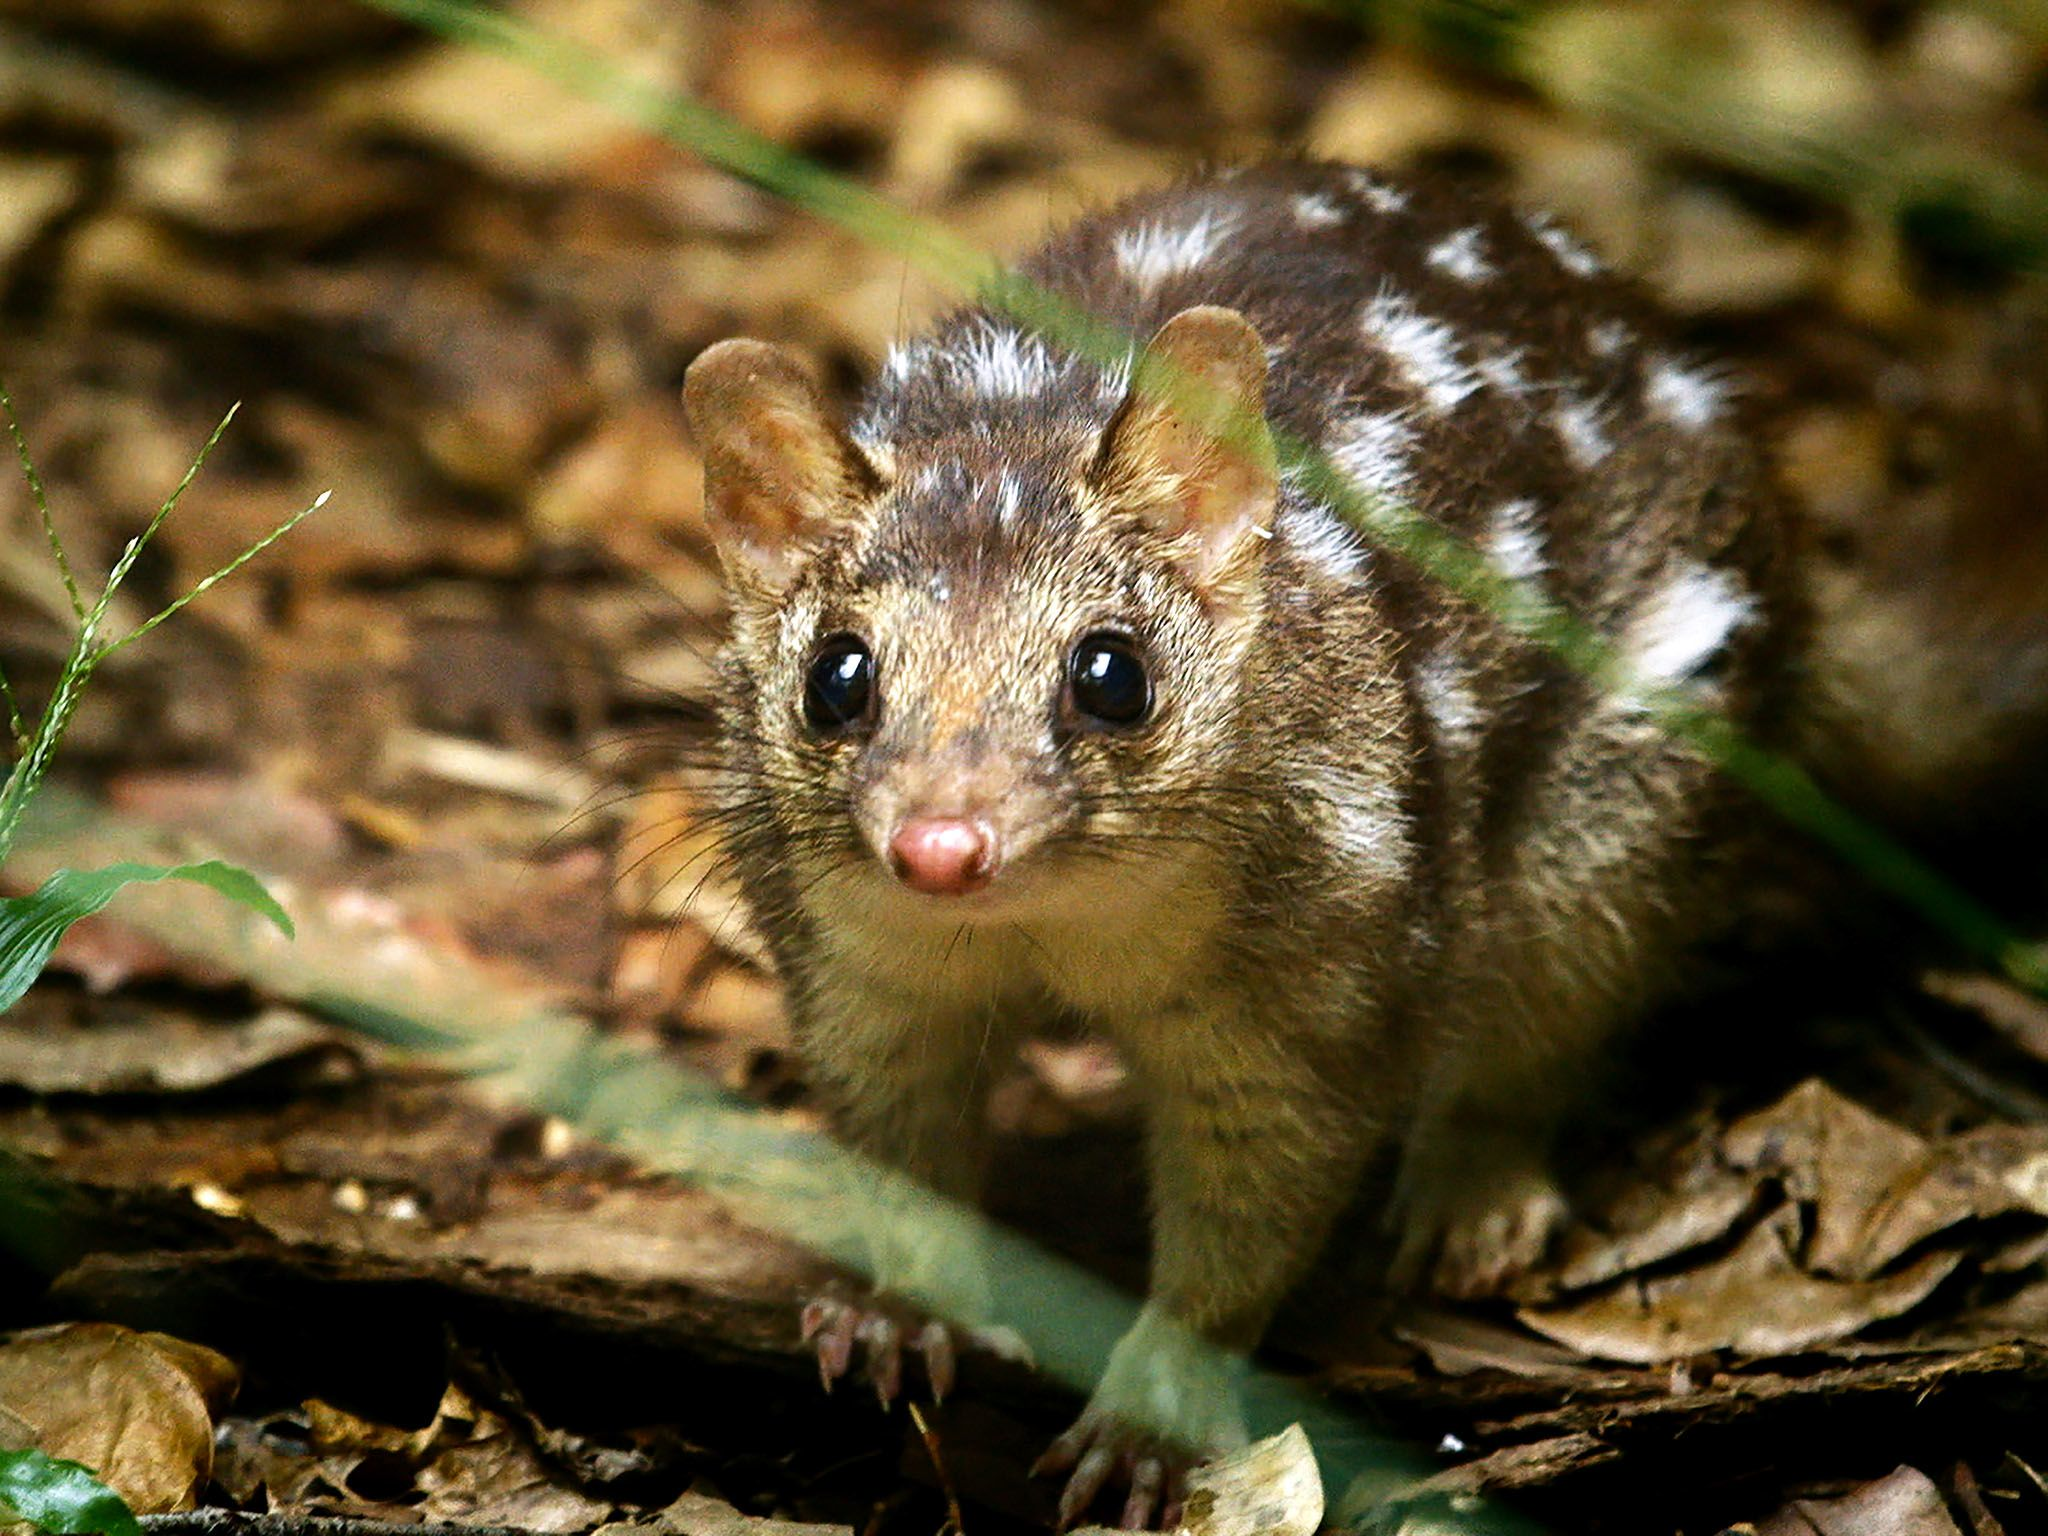 Northern Territory Wildlife Park, Northern Territory Australia: The Northern quoll (Dasyurus... [Photo of the day - March 2016]